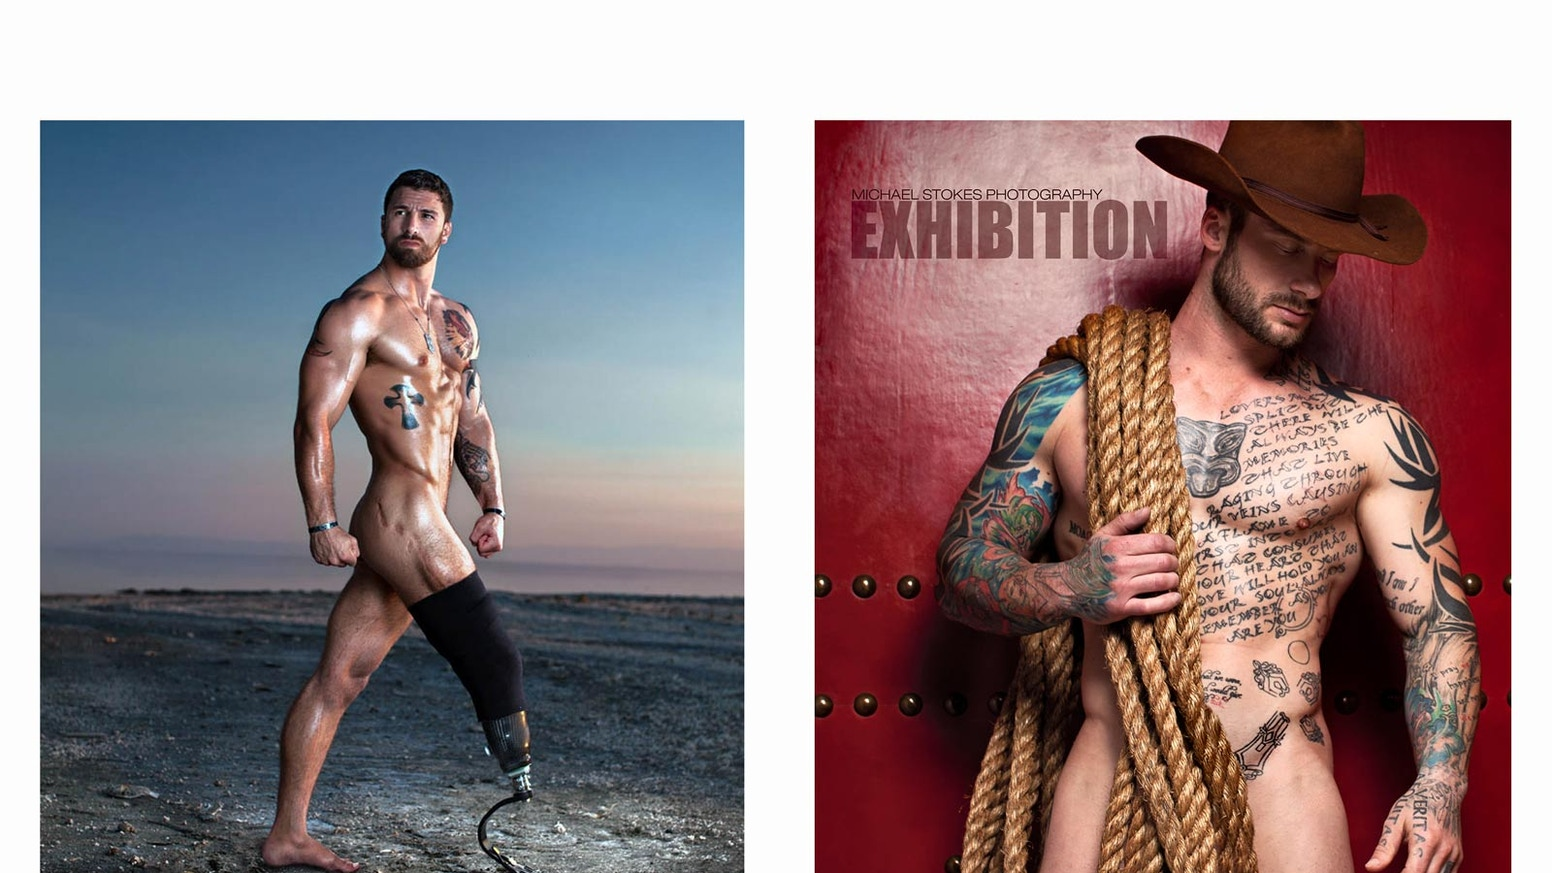 We will fund two large-scale, coffee table, art books.  One features wounded US veterans and the other explores male figure studies.